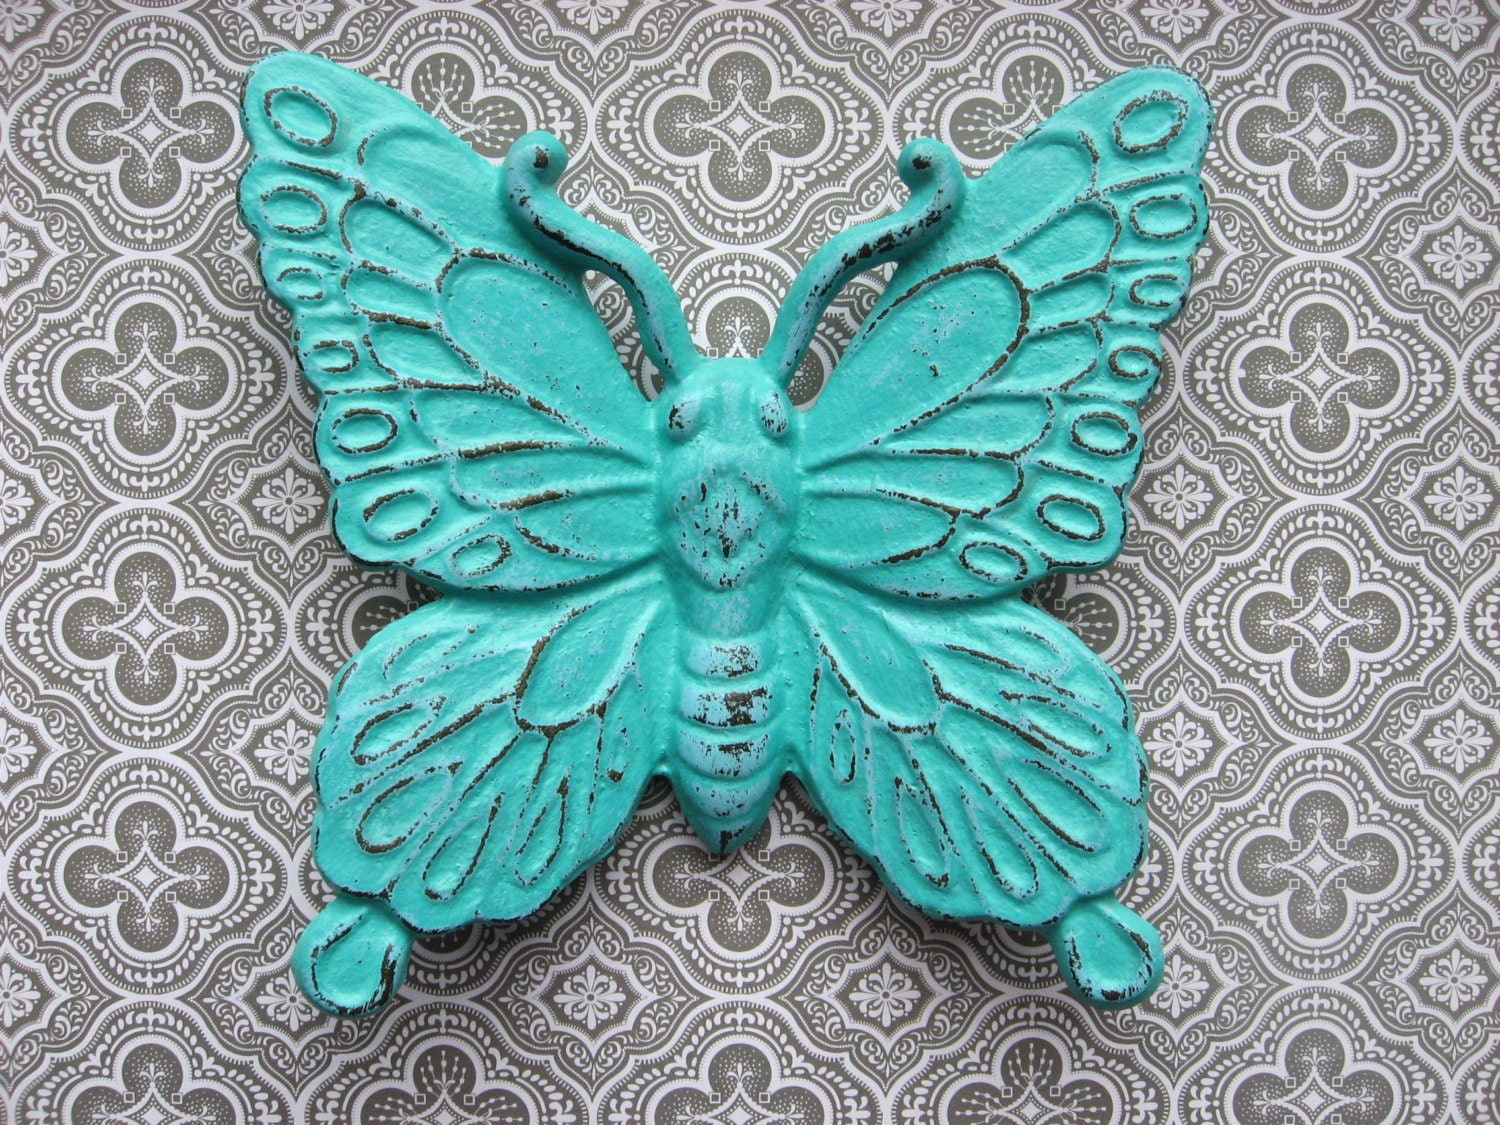 Blue butterfly wall decor : Butterfly decor wall hanging aqua blue by theturquoisecottage